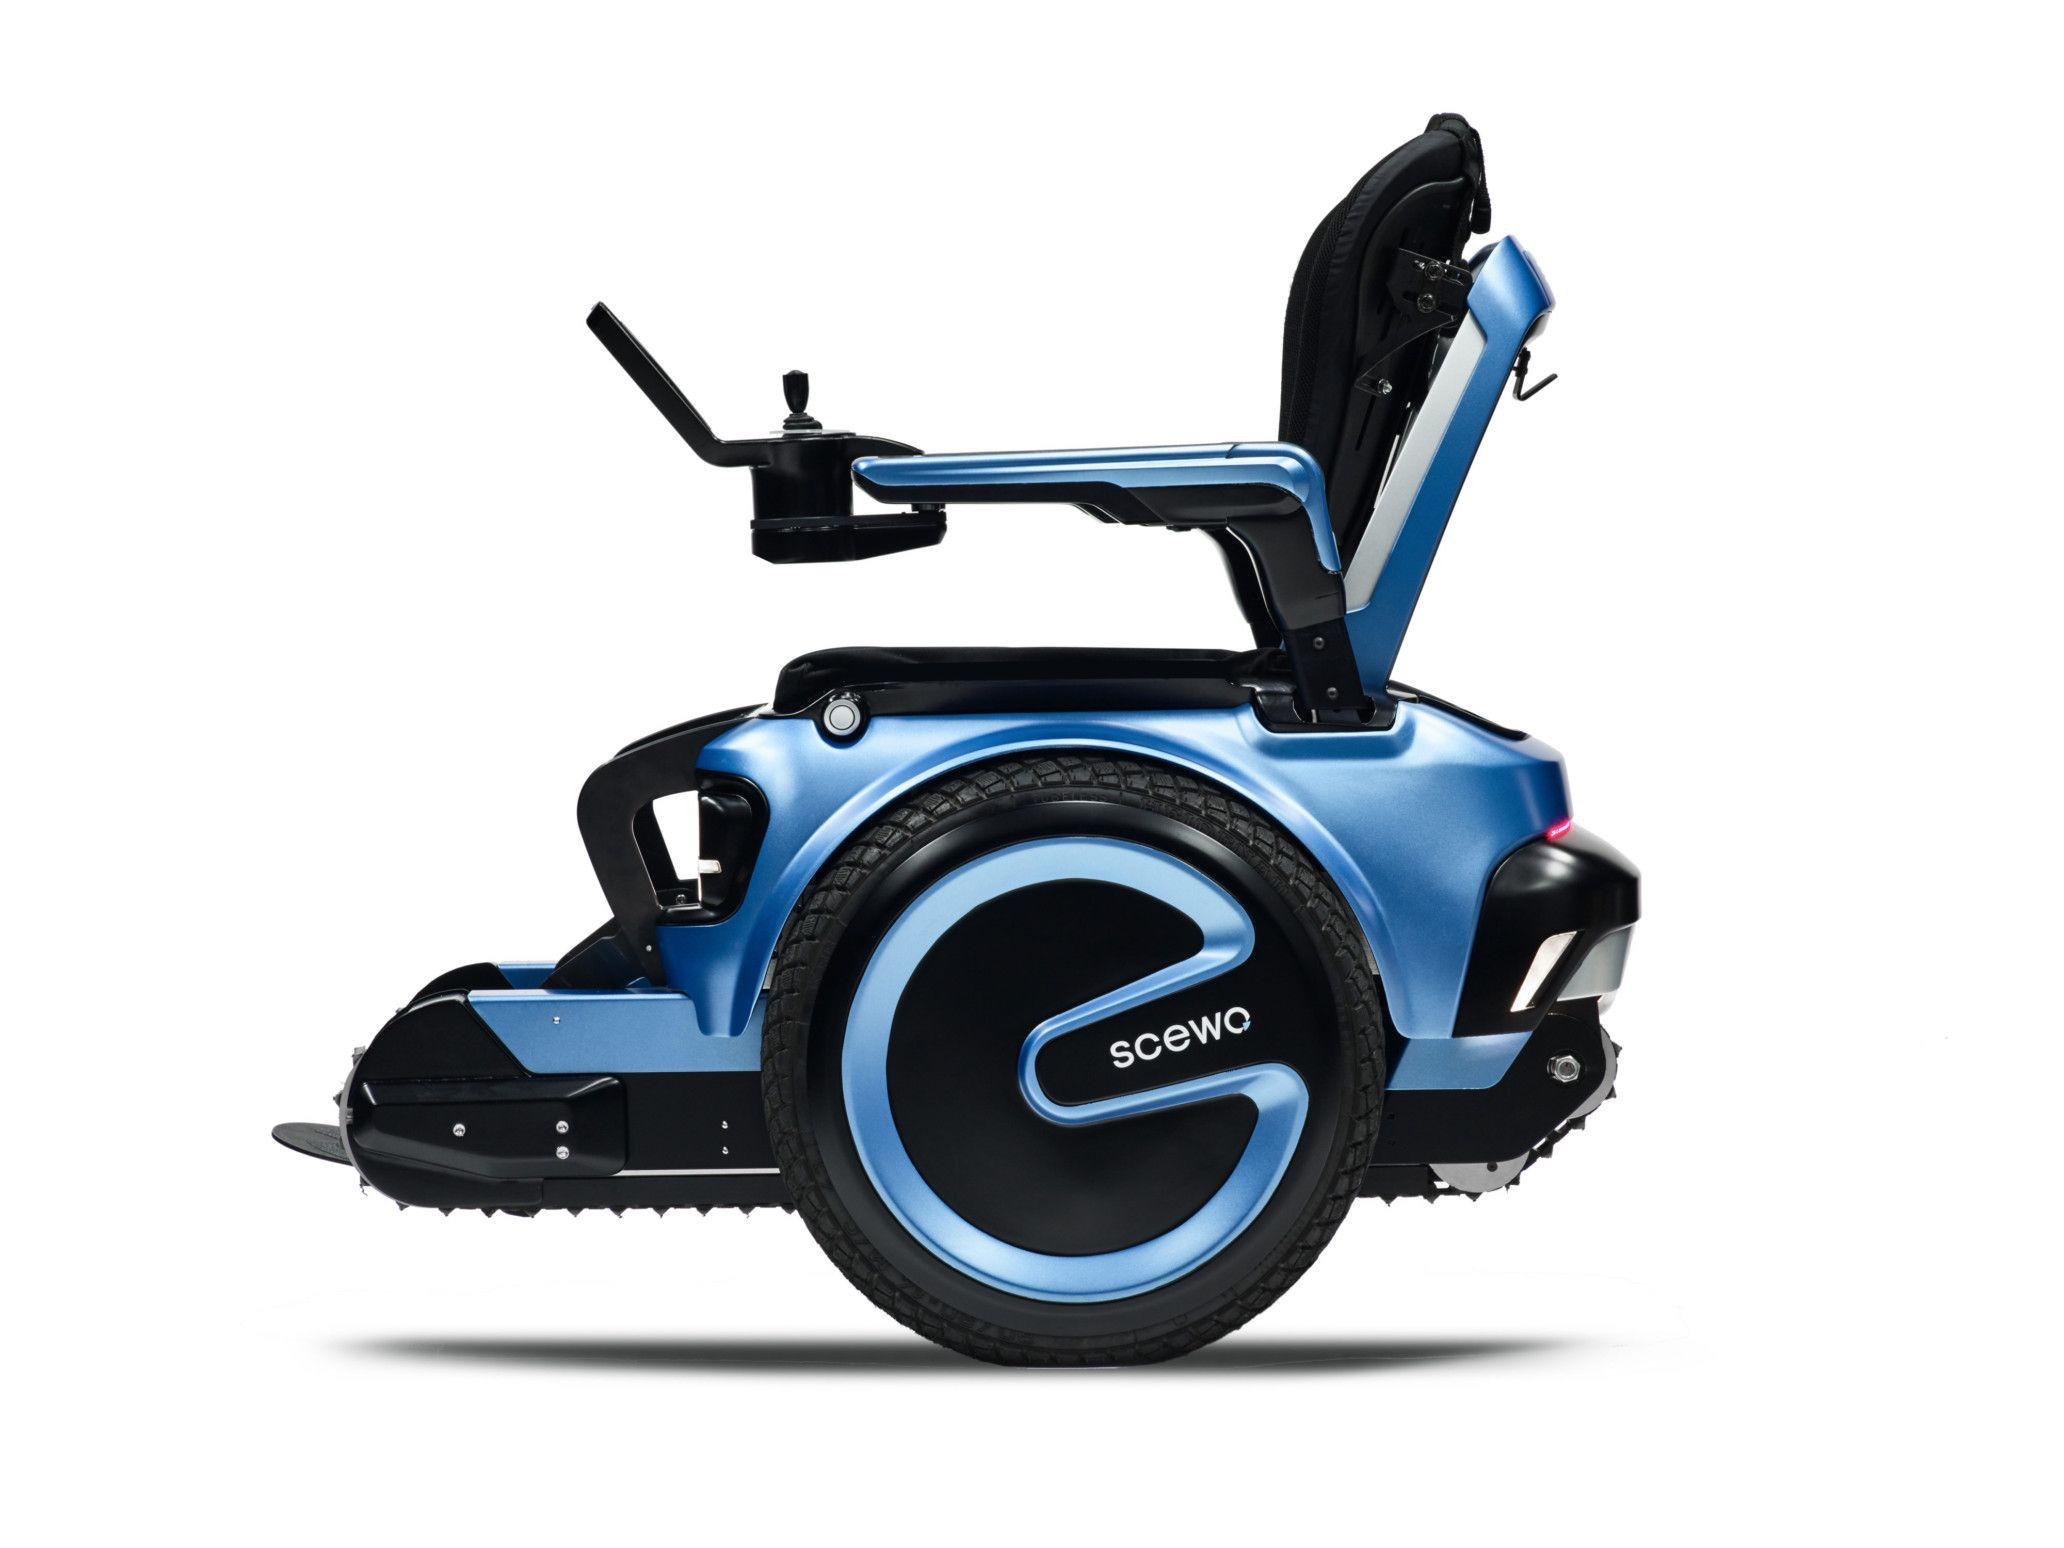 An innovative new wheelchair that has a near zero turning radius